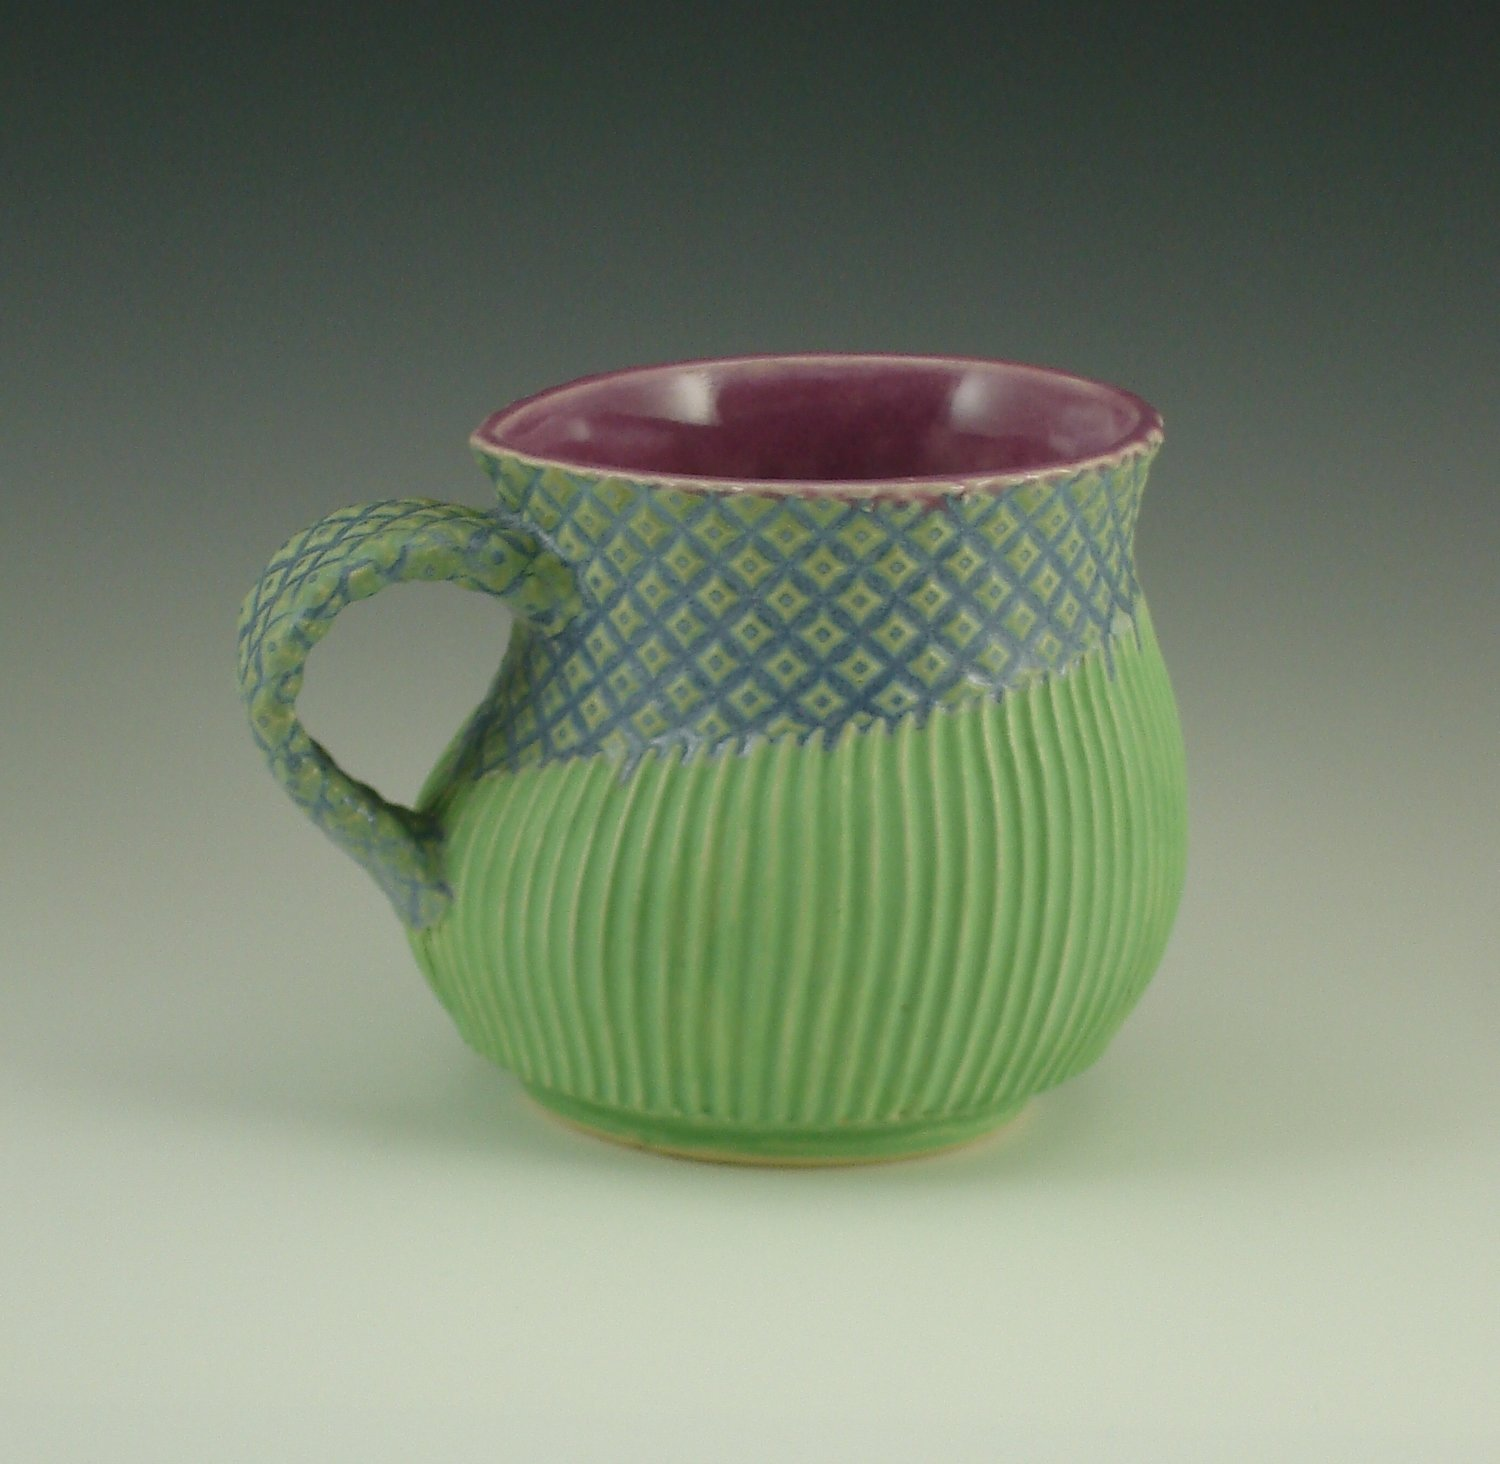 She Cup in a tiny 10oz size, in gum, mermaid & green